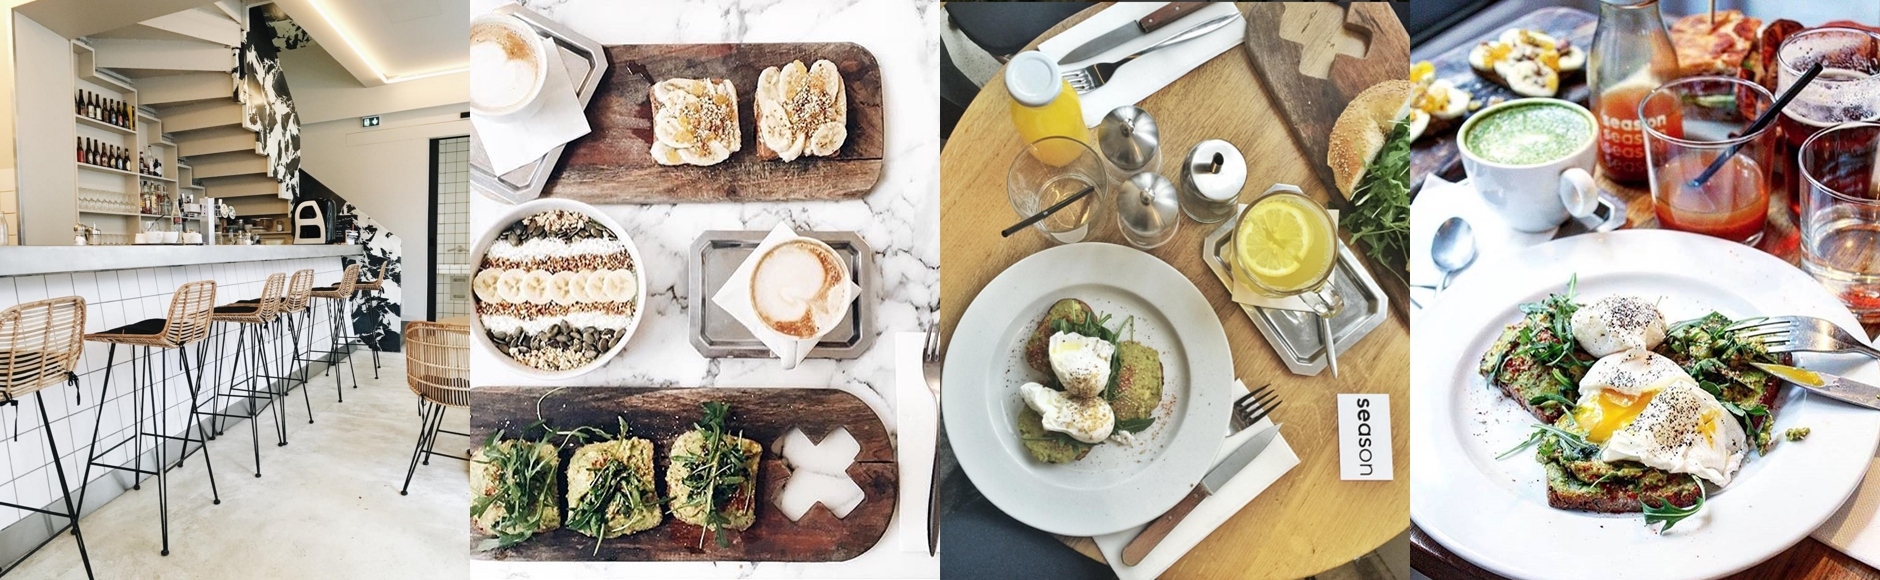 comer-en-paris-season-brunch-bowls-lifestyle